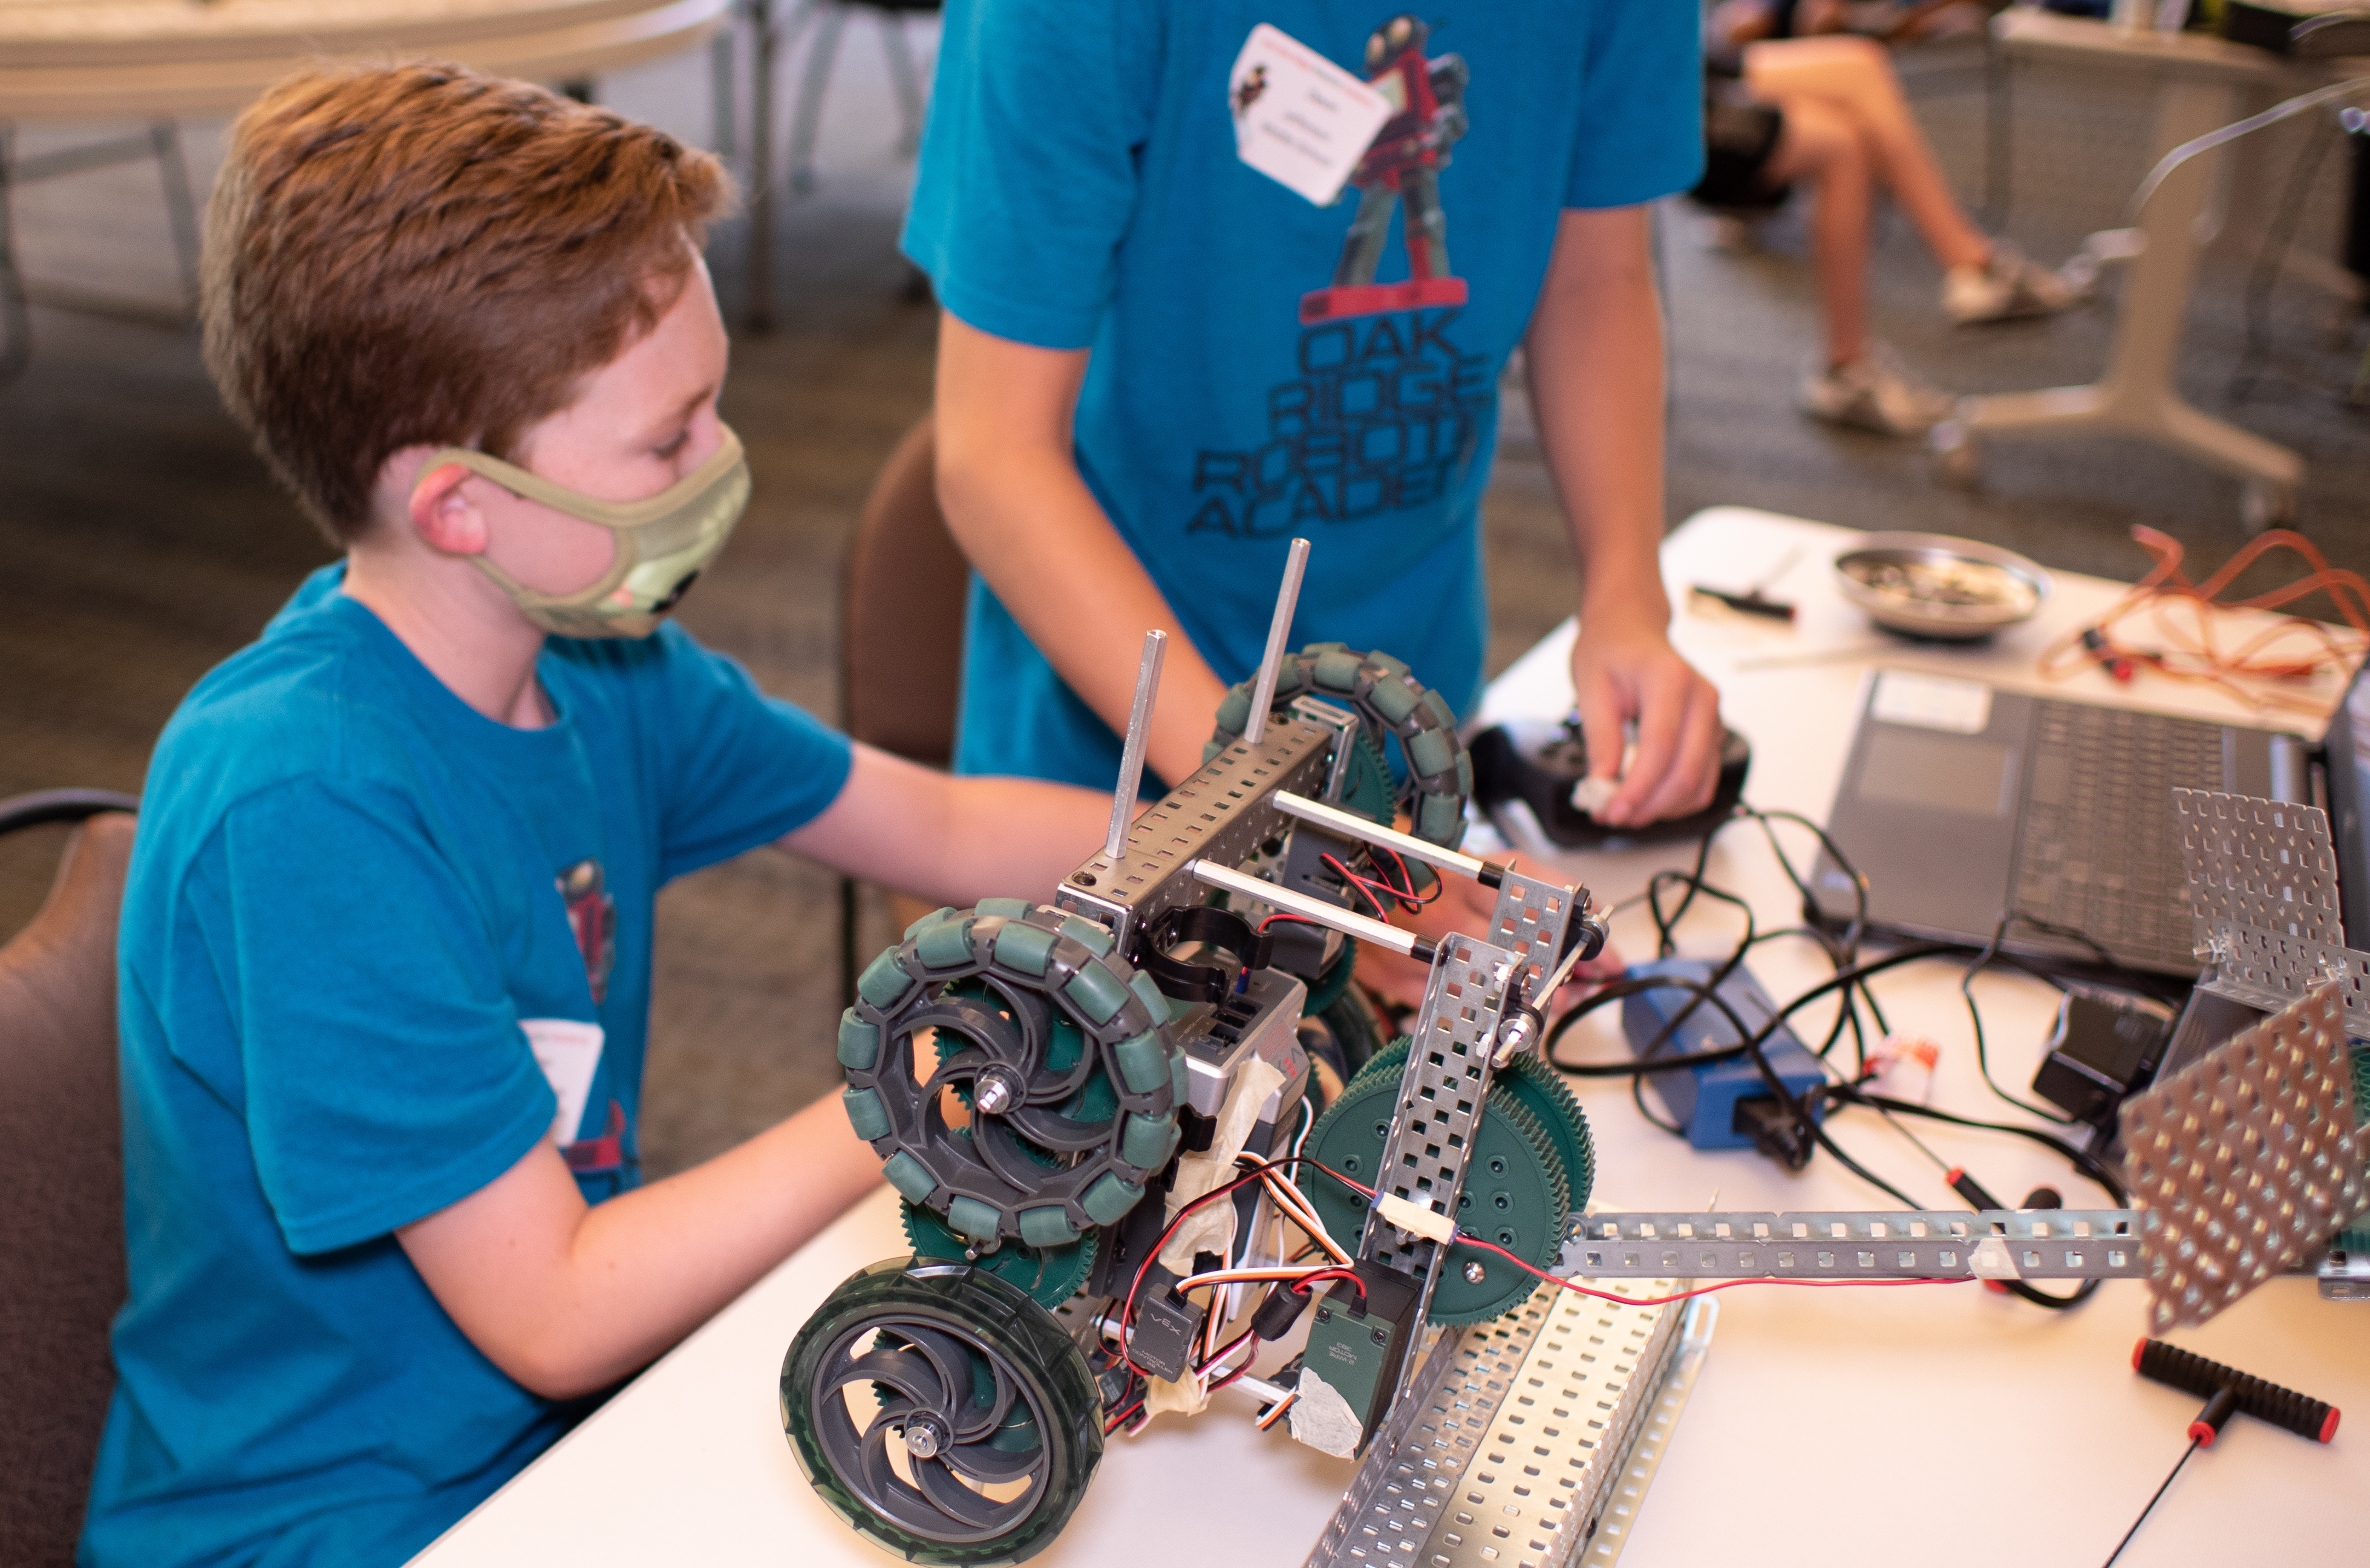 Oak Ridge Robotics Academy prioritizes STEM outreach and student safety